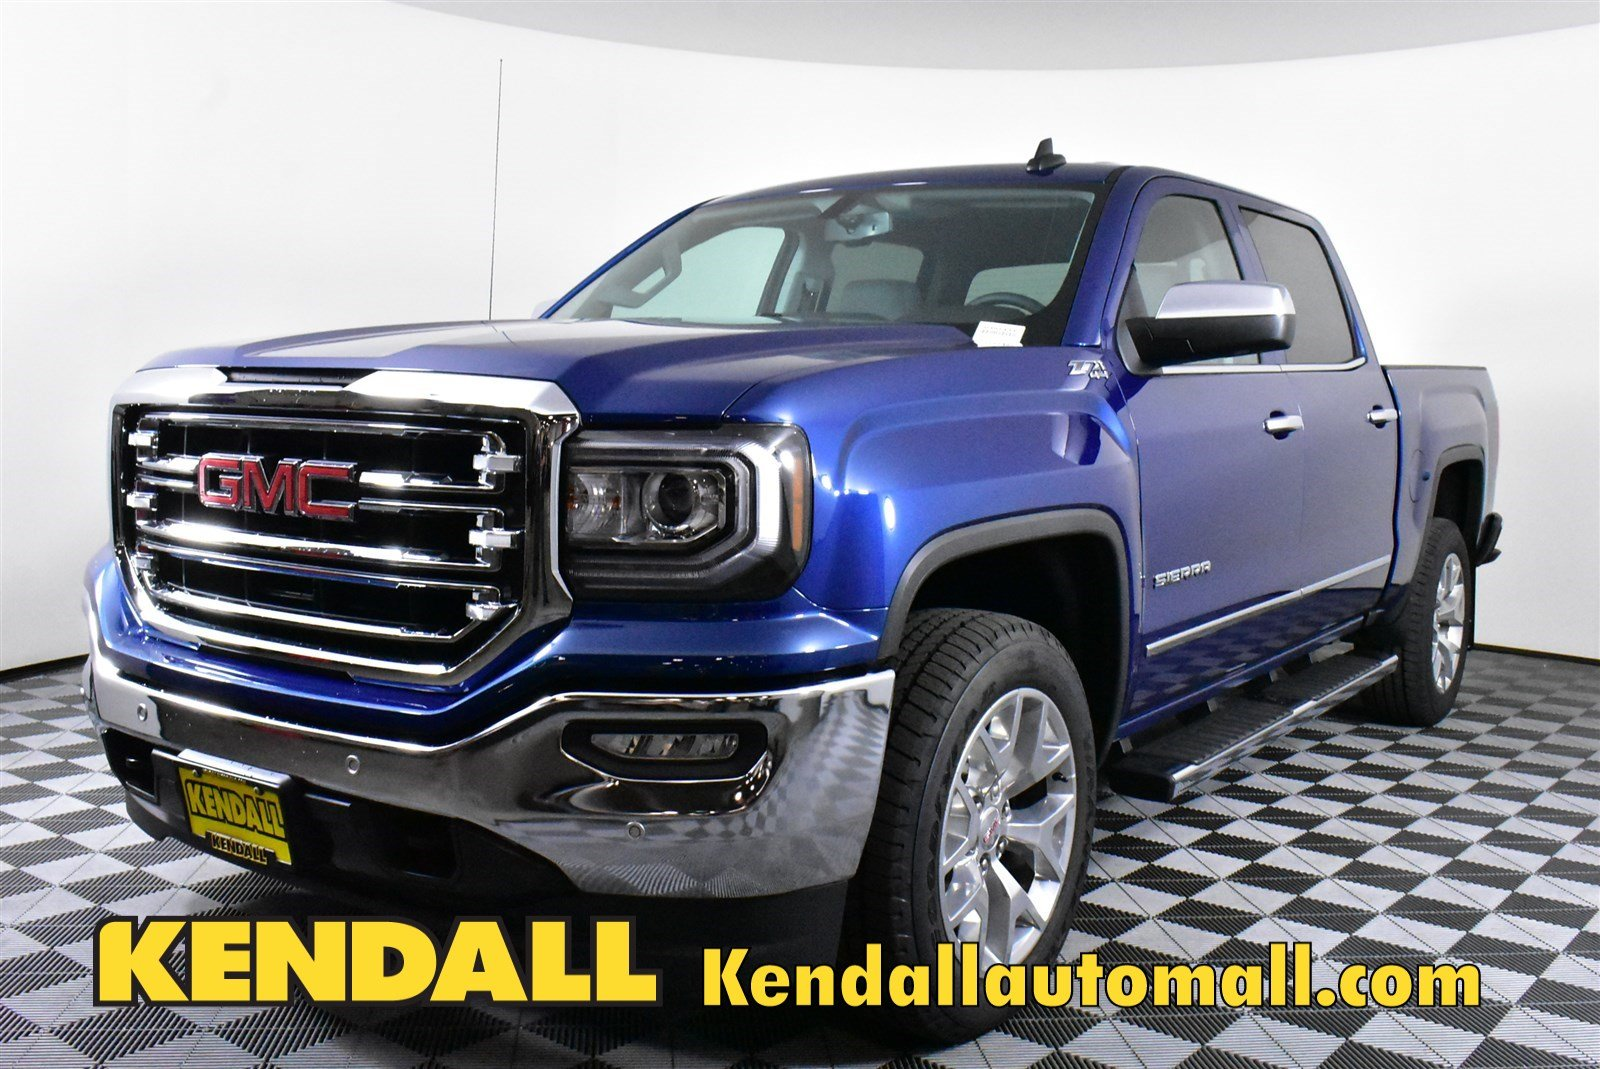 Lease a New 2018 GMC Sierra 1500 Crew SLT